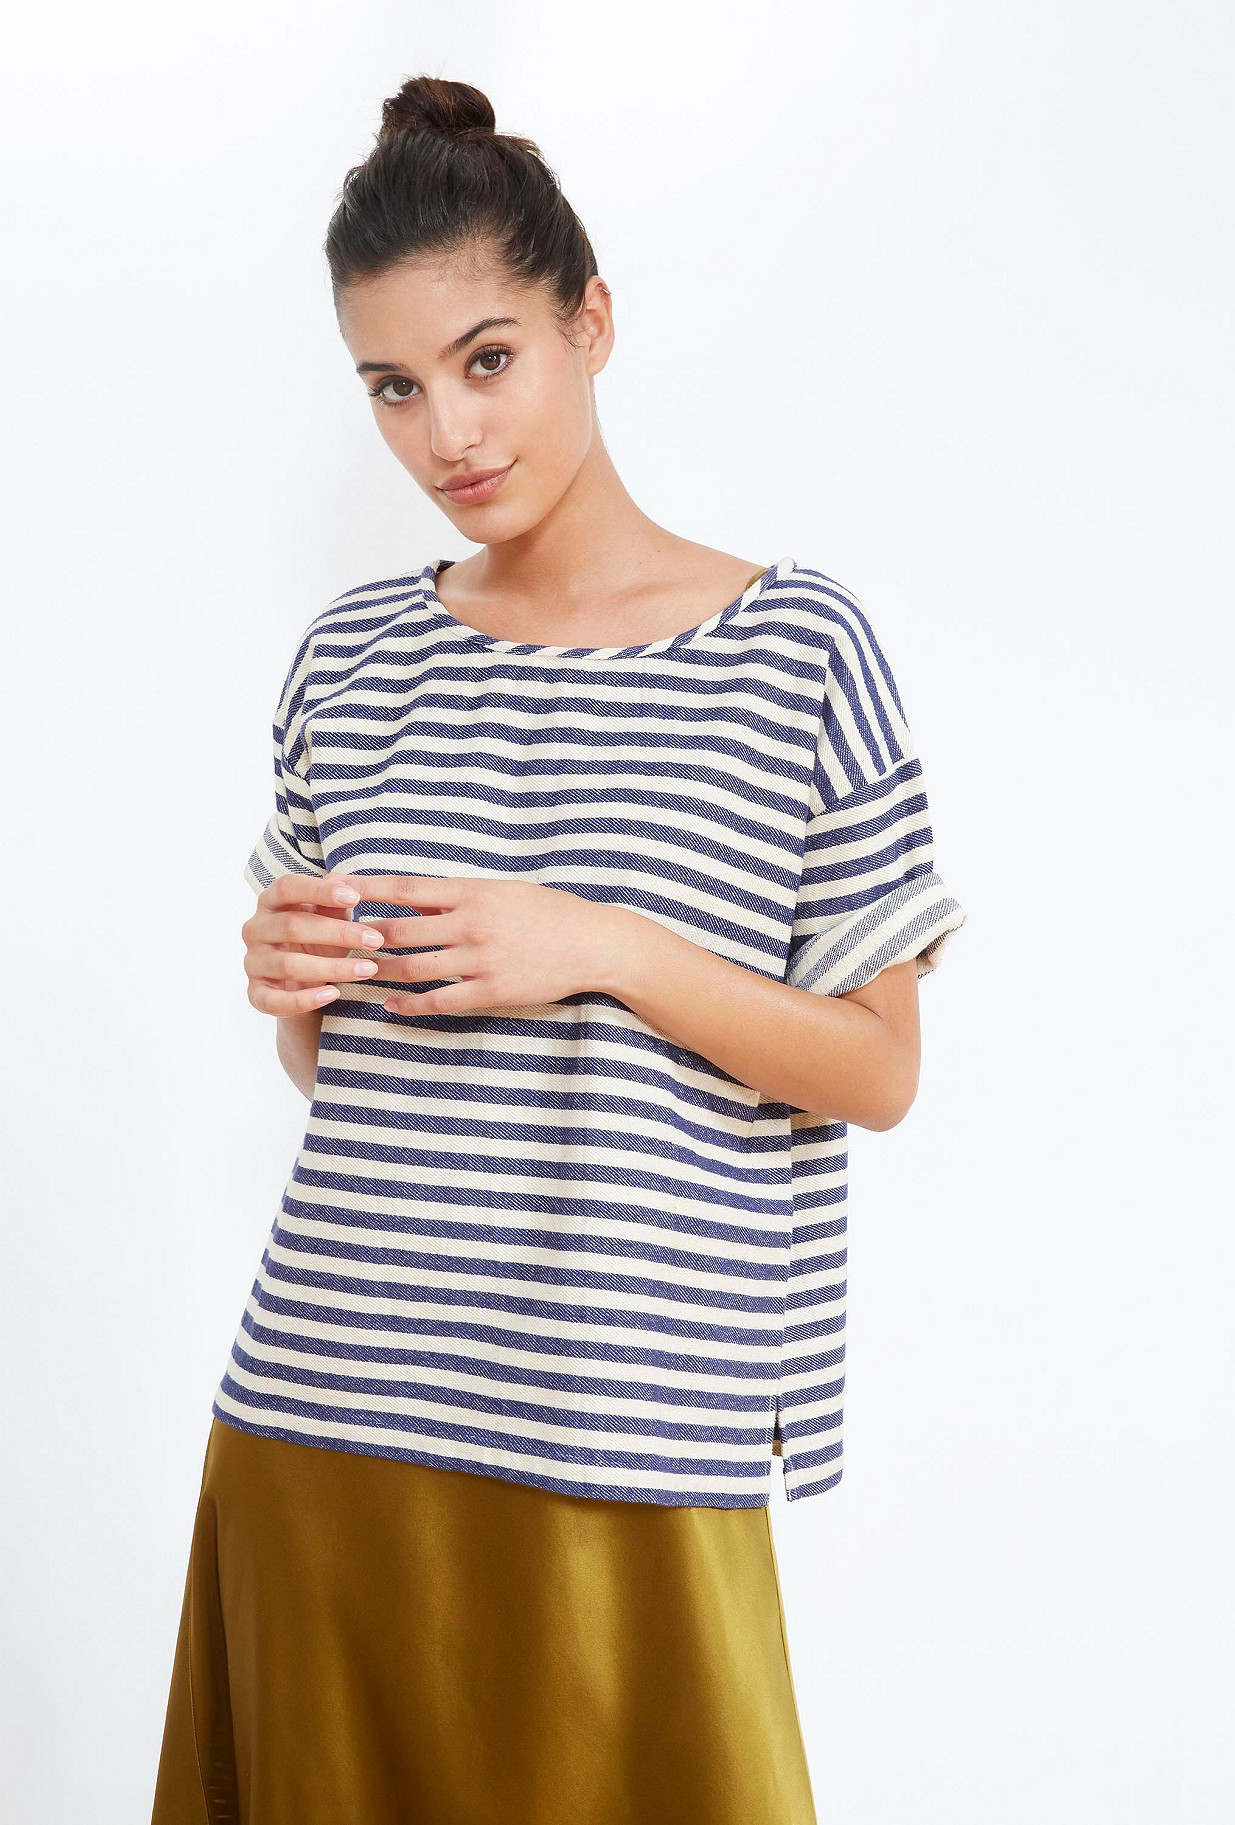 Blue stripe  TOP  Galet Mes demoiselles fashion clothes designer Paris